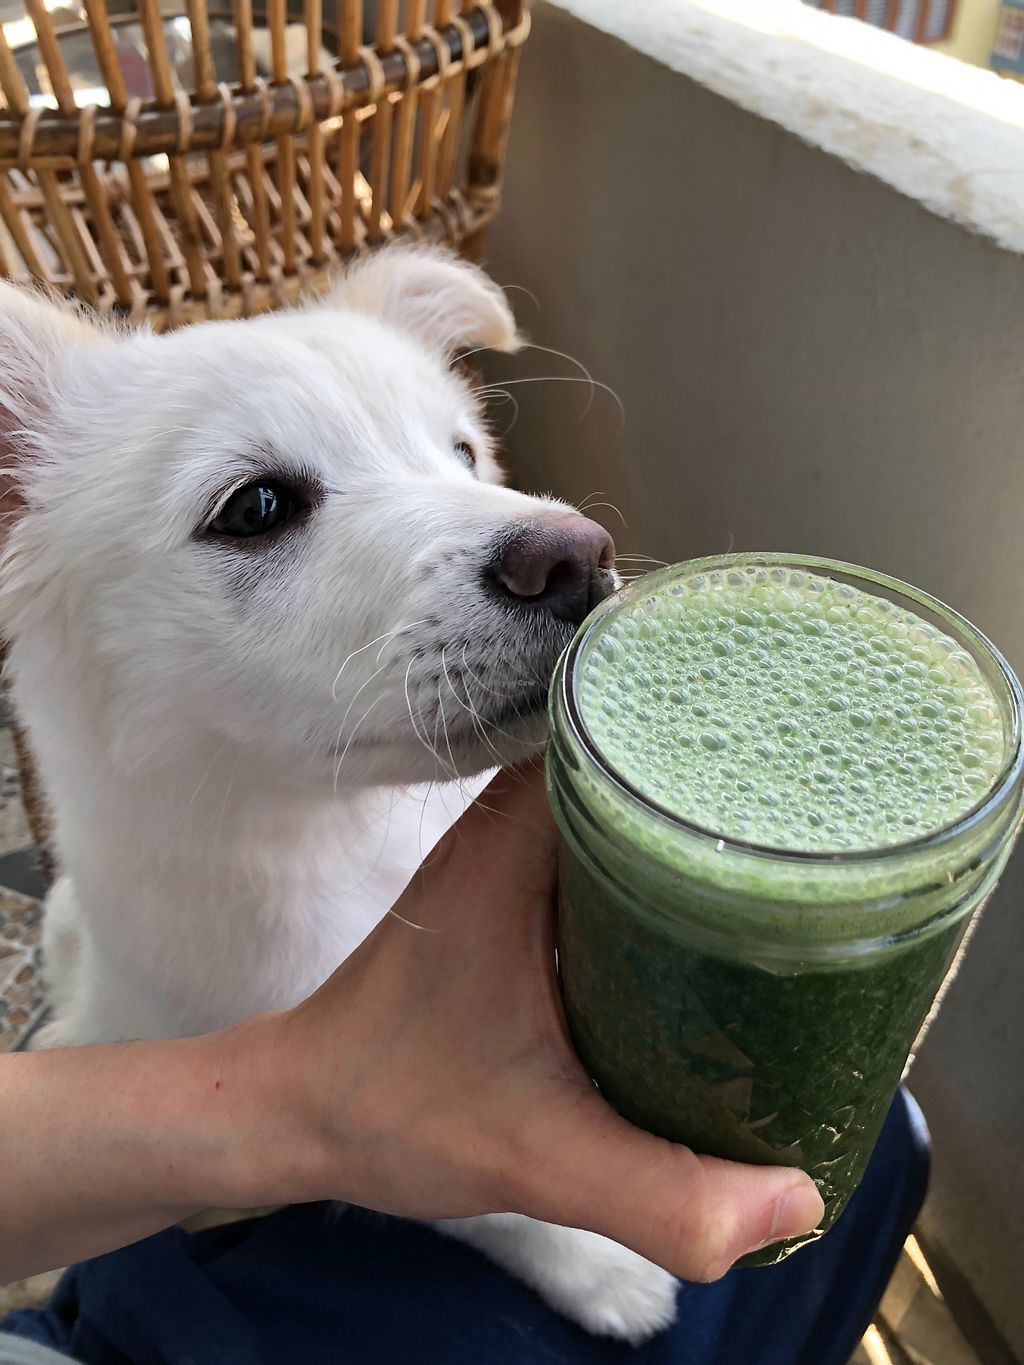 """Photo of Bliss Pure Foods  by <a href=""""/members/profile/KathrynSunantha"""">KathrynSunantha</a> <br/>Bliss superfood puppy—- MACA  <br/> March 5, 2018  - <a href='/contact/abuse/image/70969/367053'>Report</a>"""